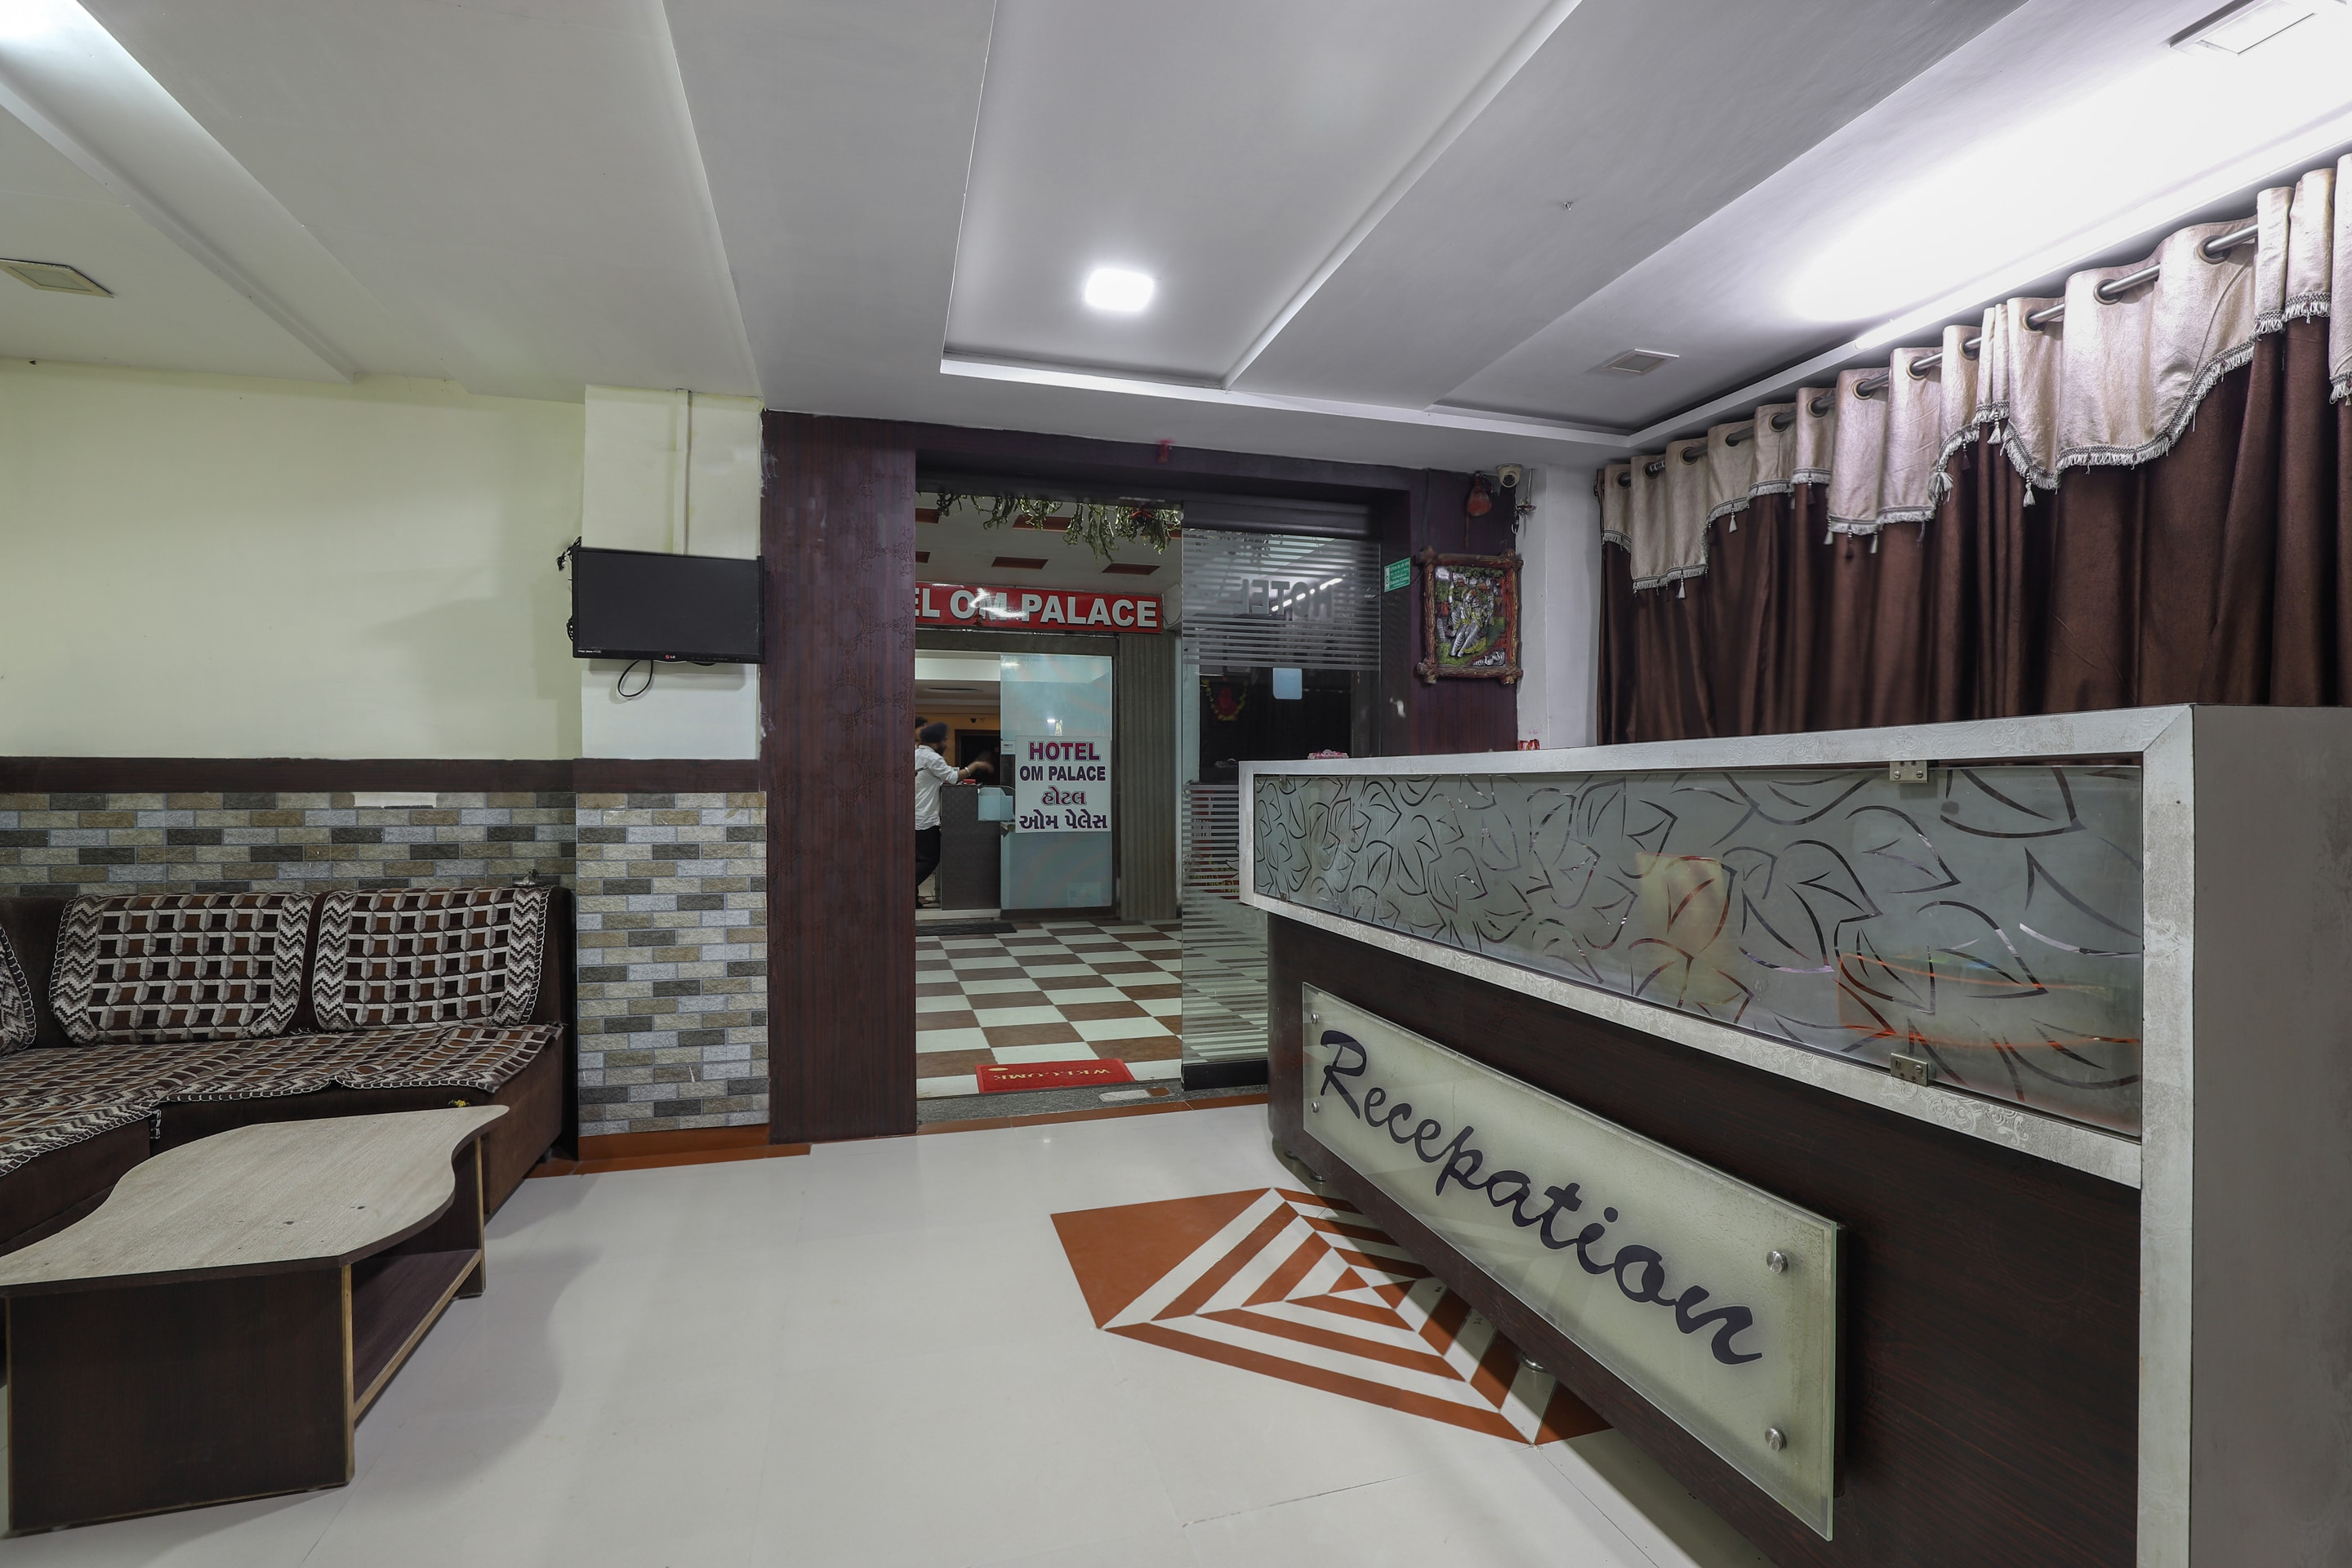 Hotels in Ahmedabad Starting @₹490 𝐔𝐩𝐭𝐨 𝟓𝟎% 𝐎𝐅𝐅